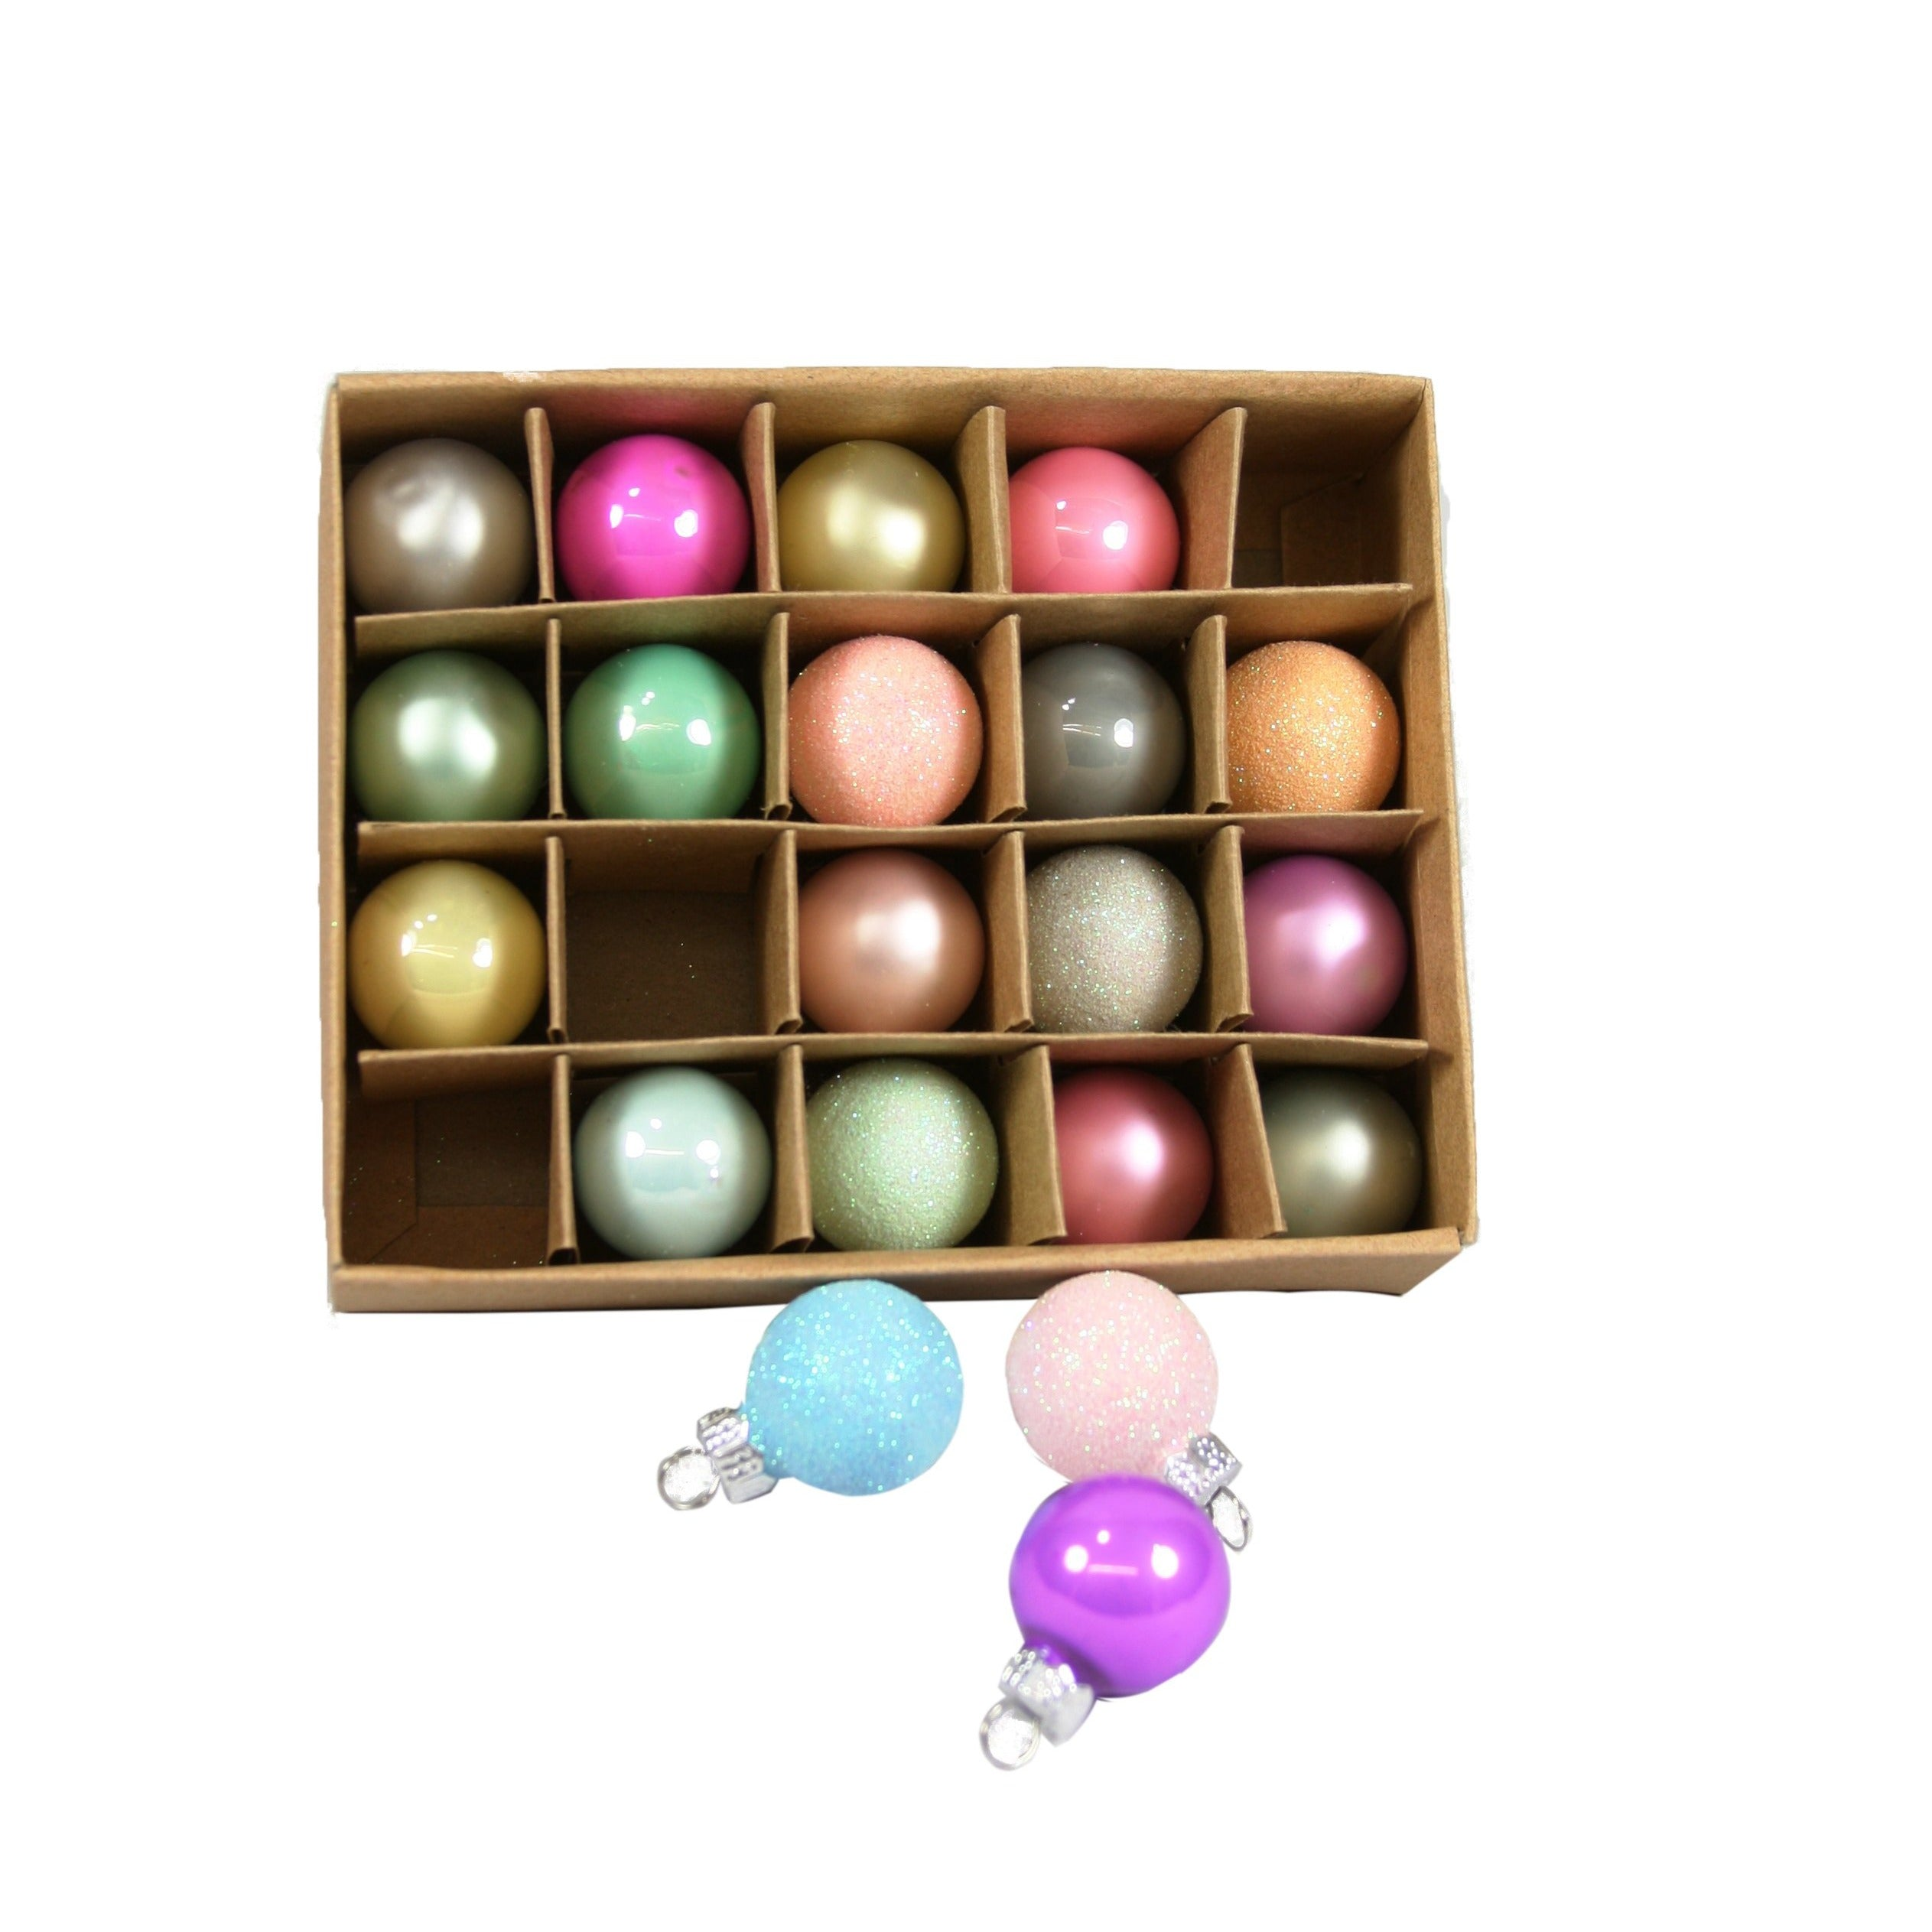 Boxed Set of Mercury Glass Baubles - 20pk